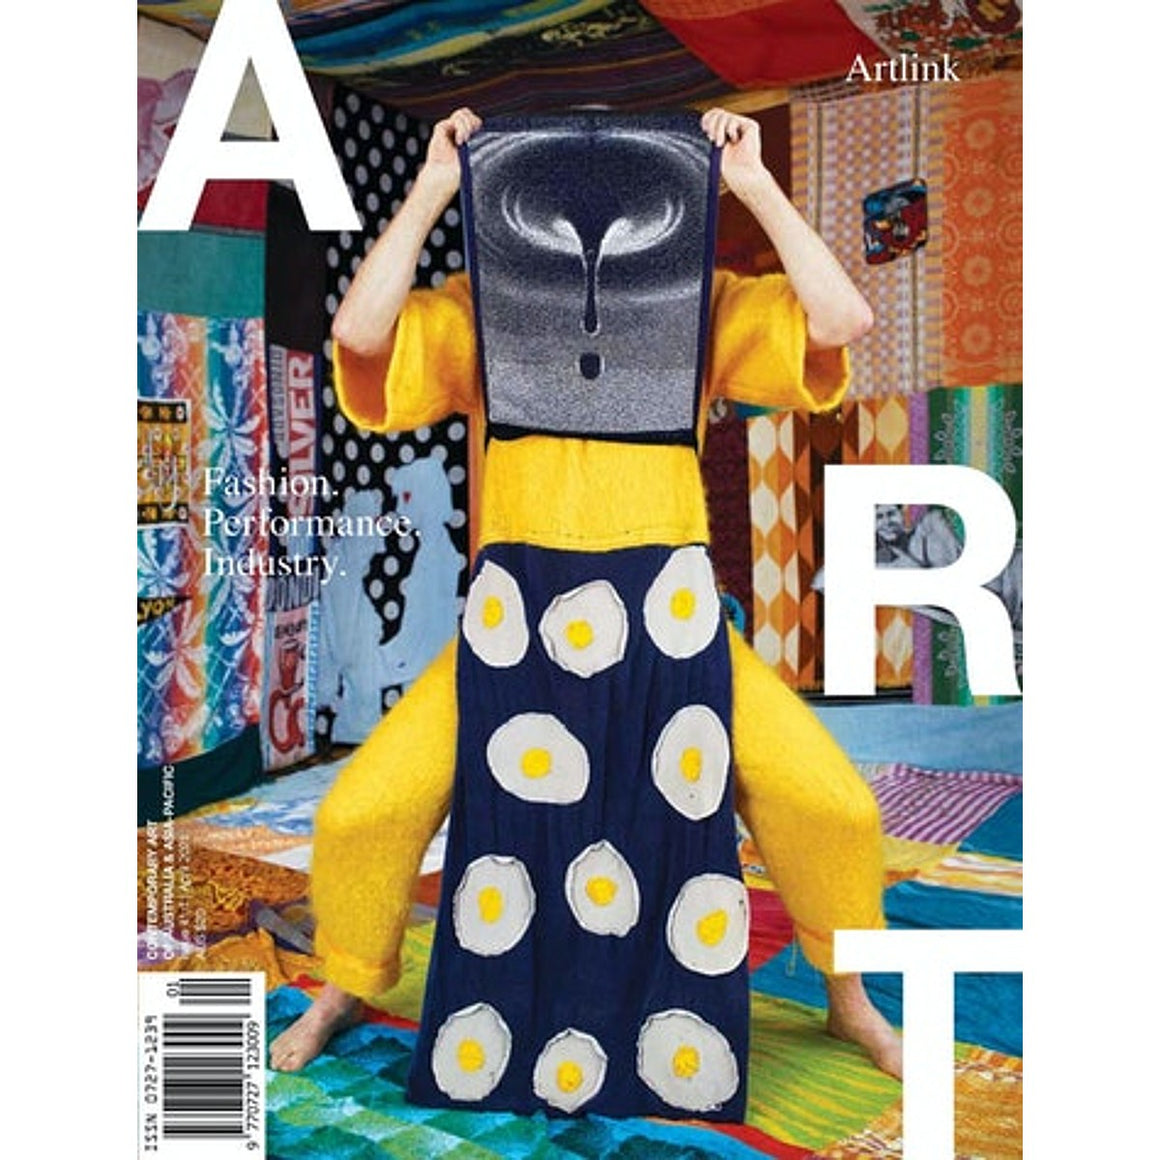 Artlink Magazine | Issue 41:1 | April 2021